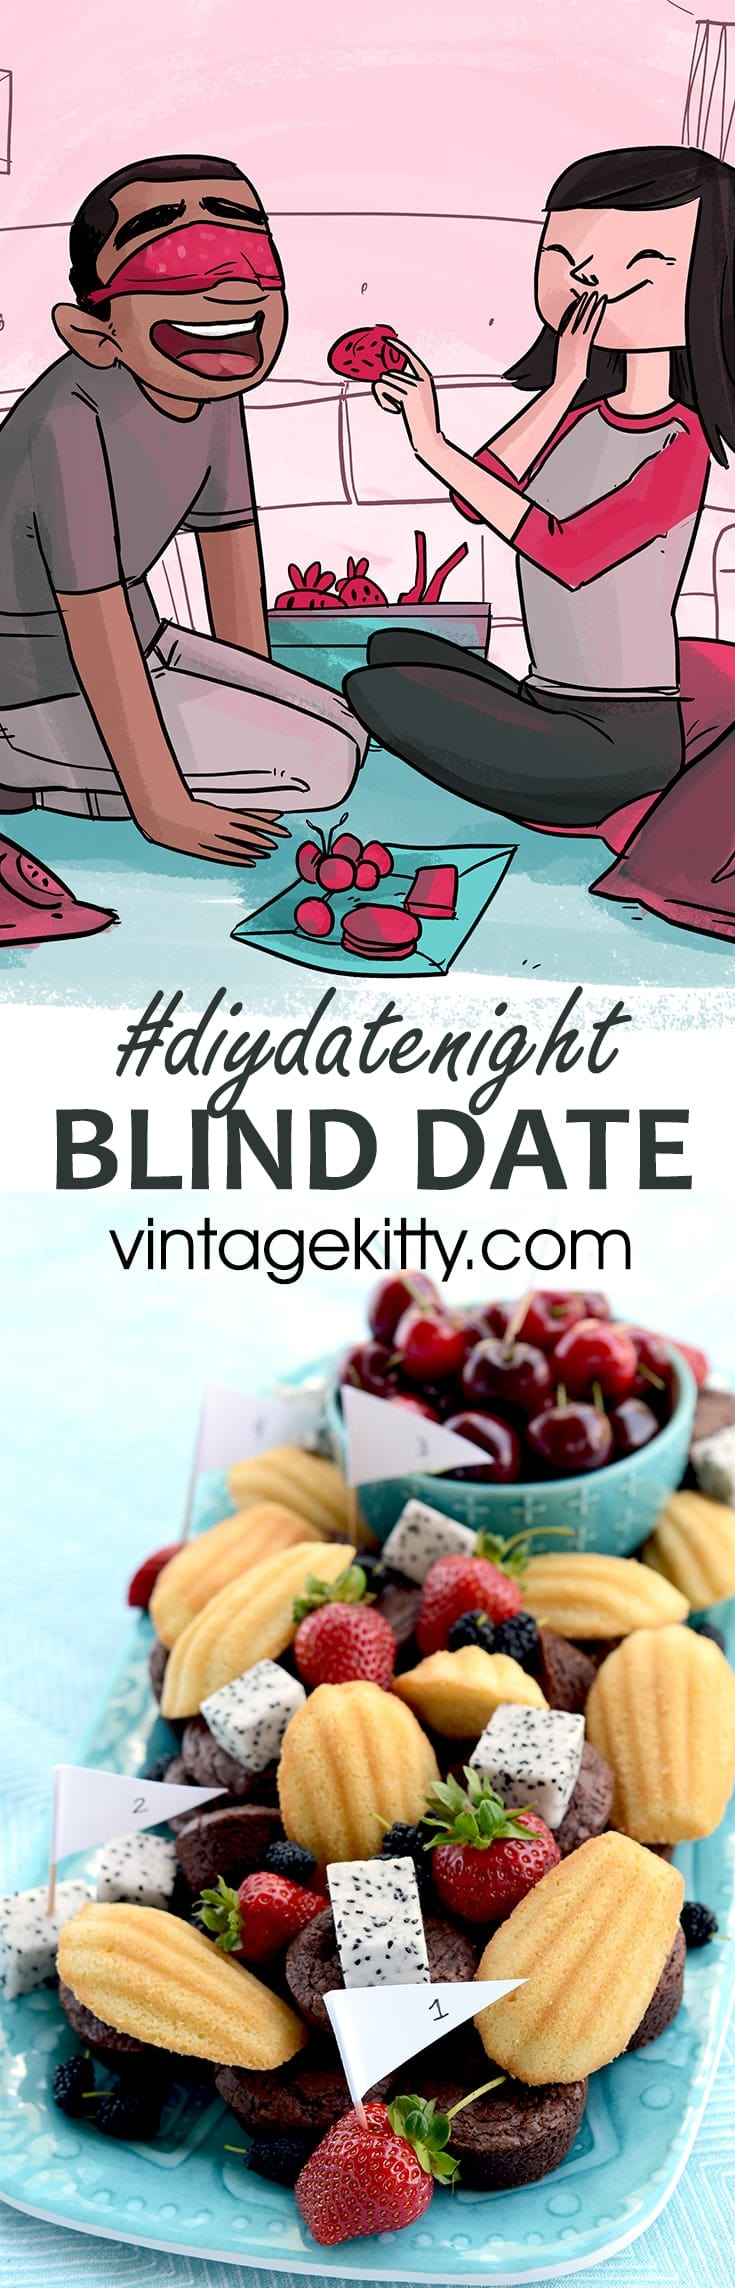 """What is sexier than a """"blind"""" date #diydatenight? Have a little blindfolded fun with a taste test challenge and double blind hide 'n seek!"""